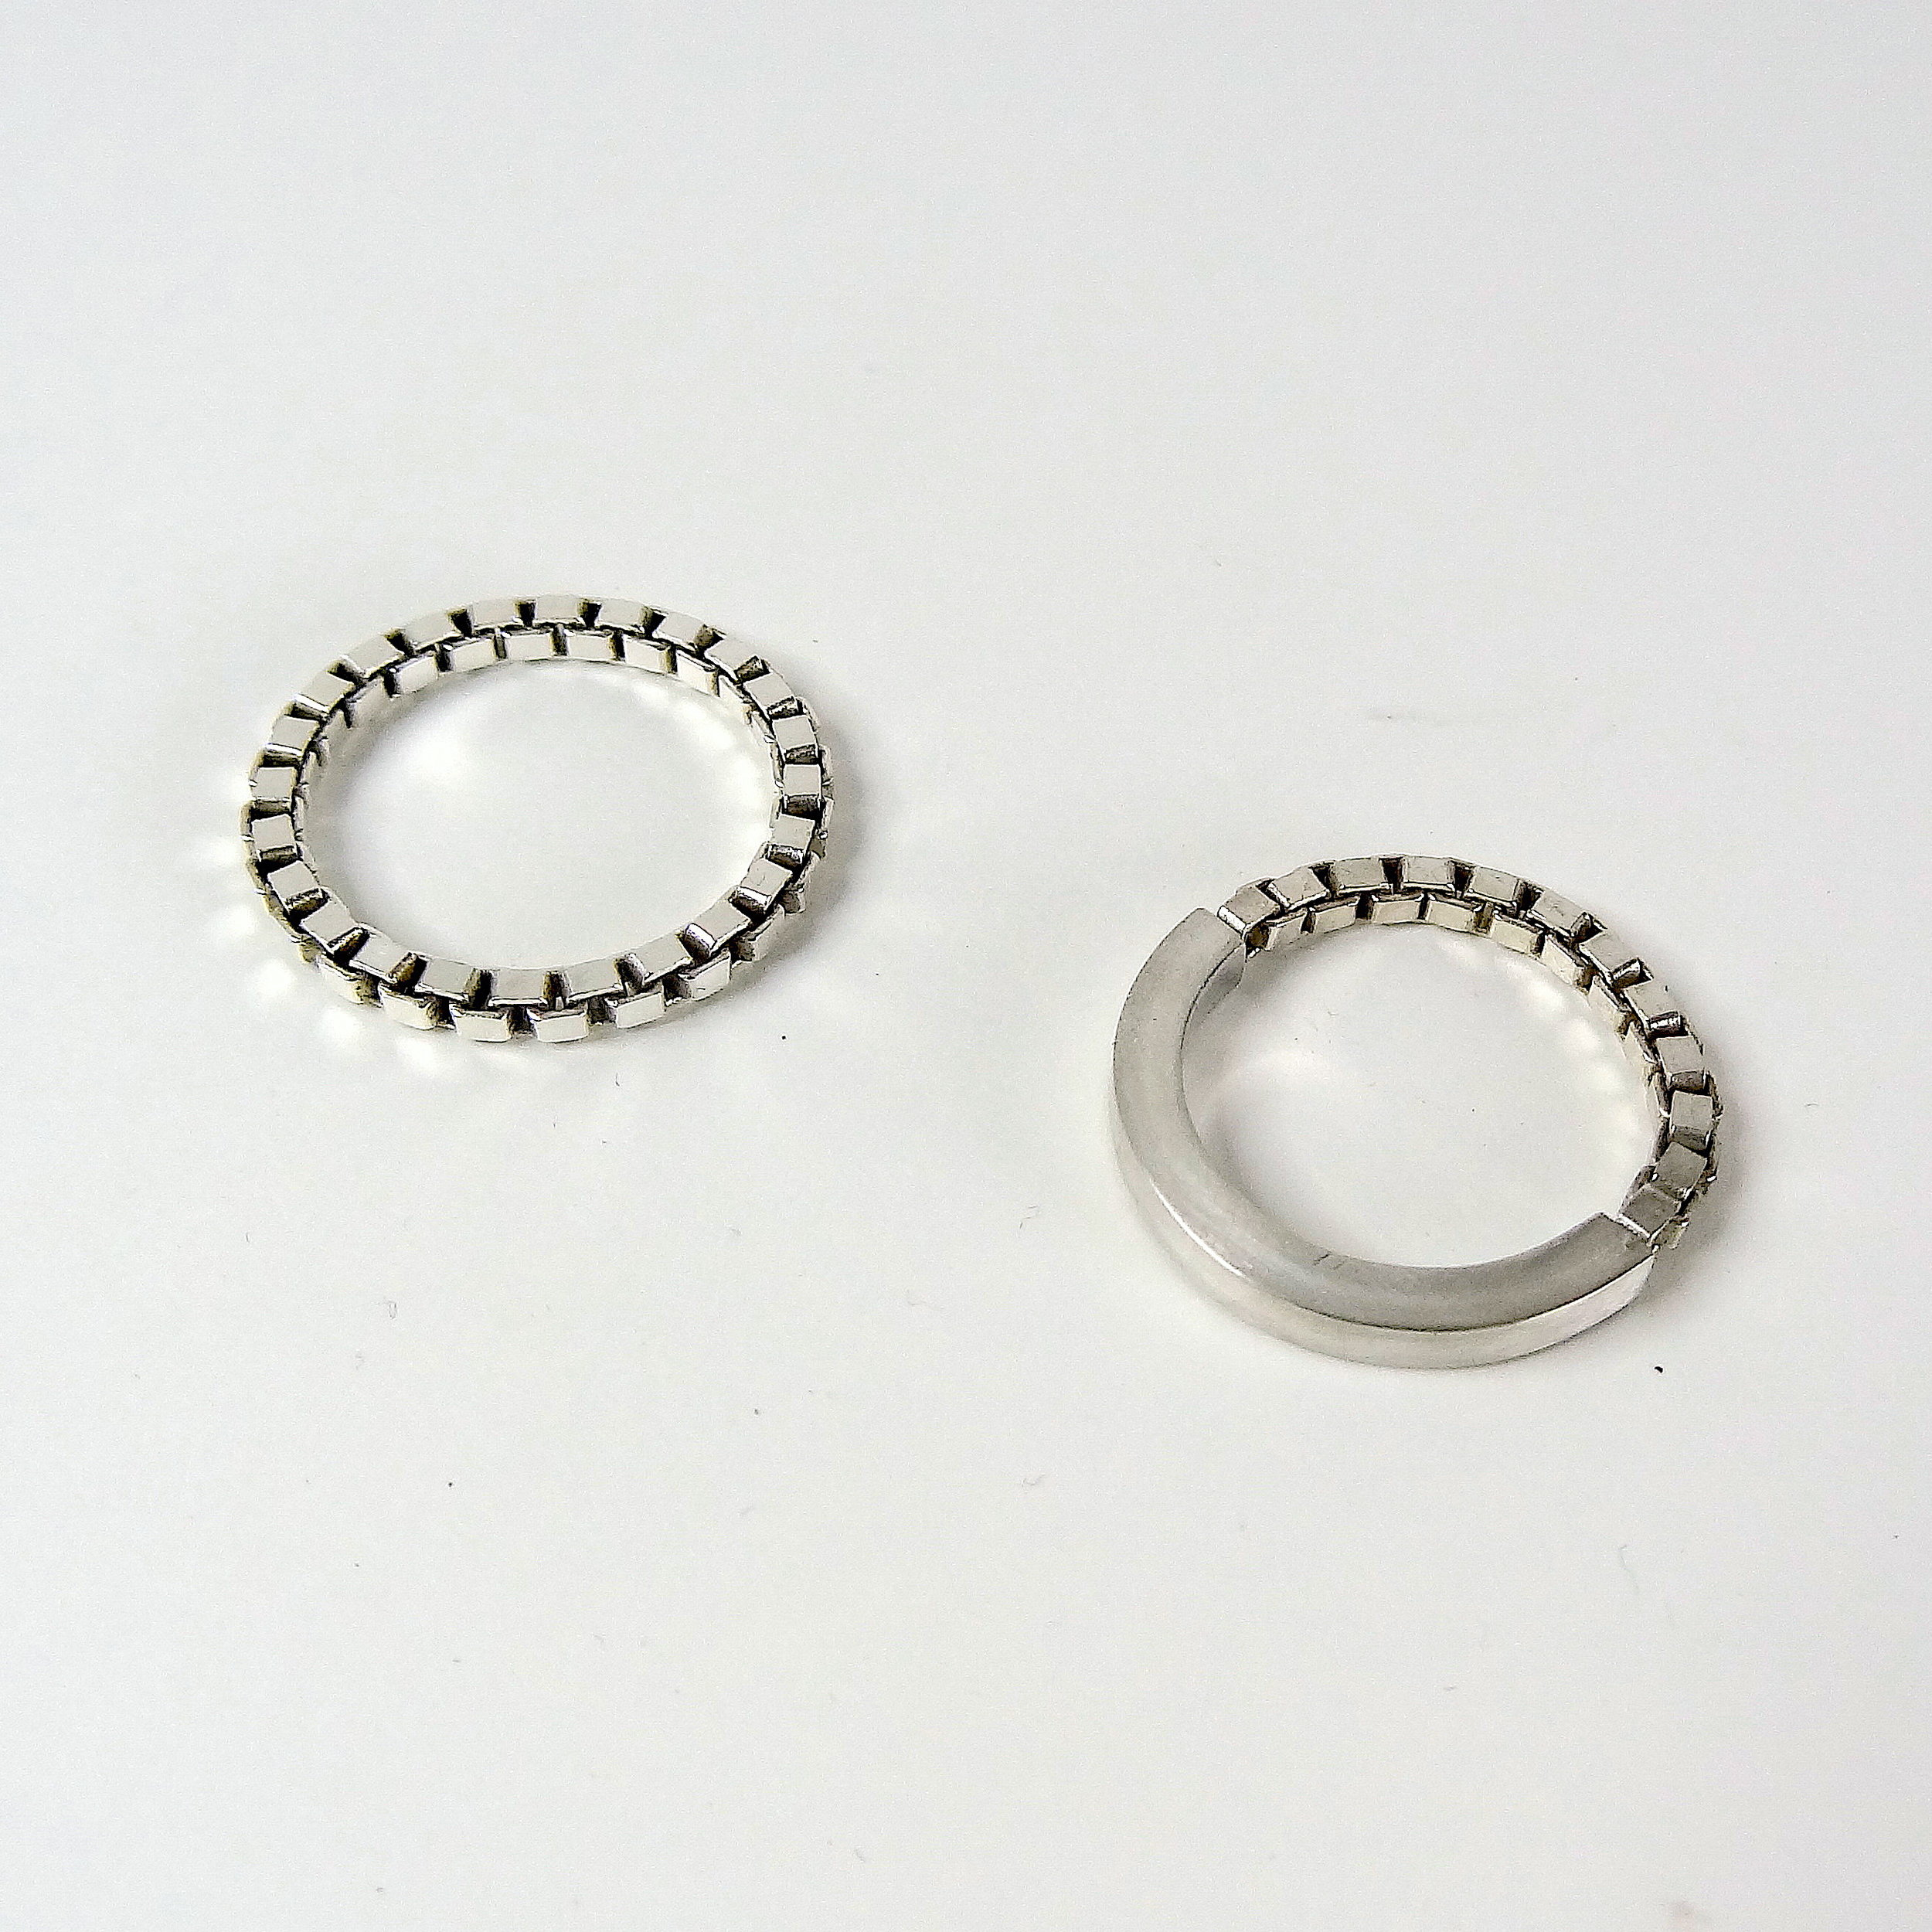 rings chain and two halves.JPG